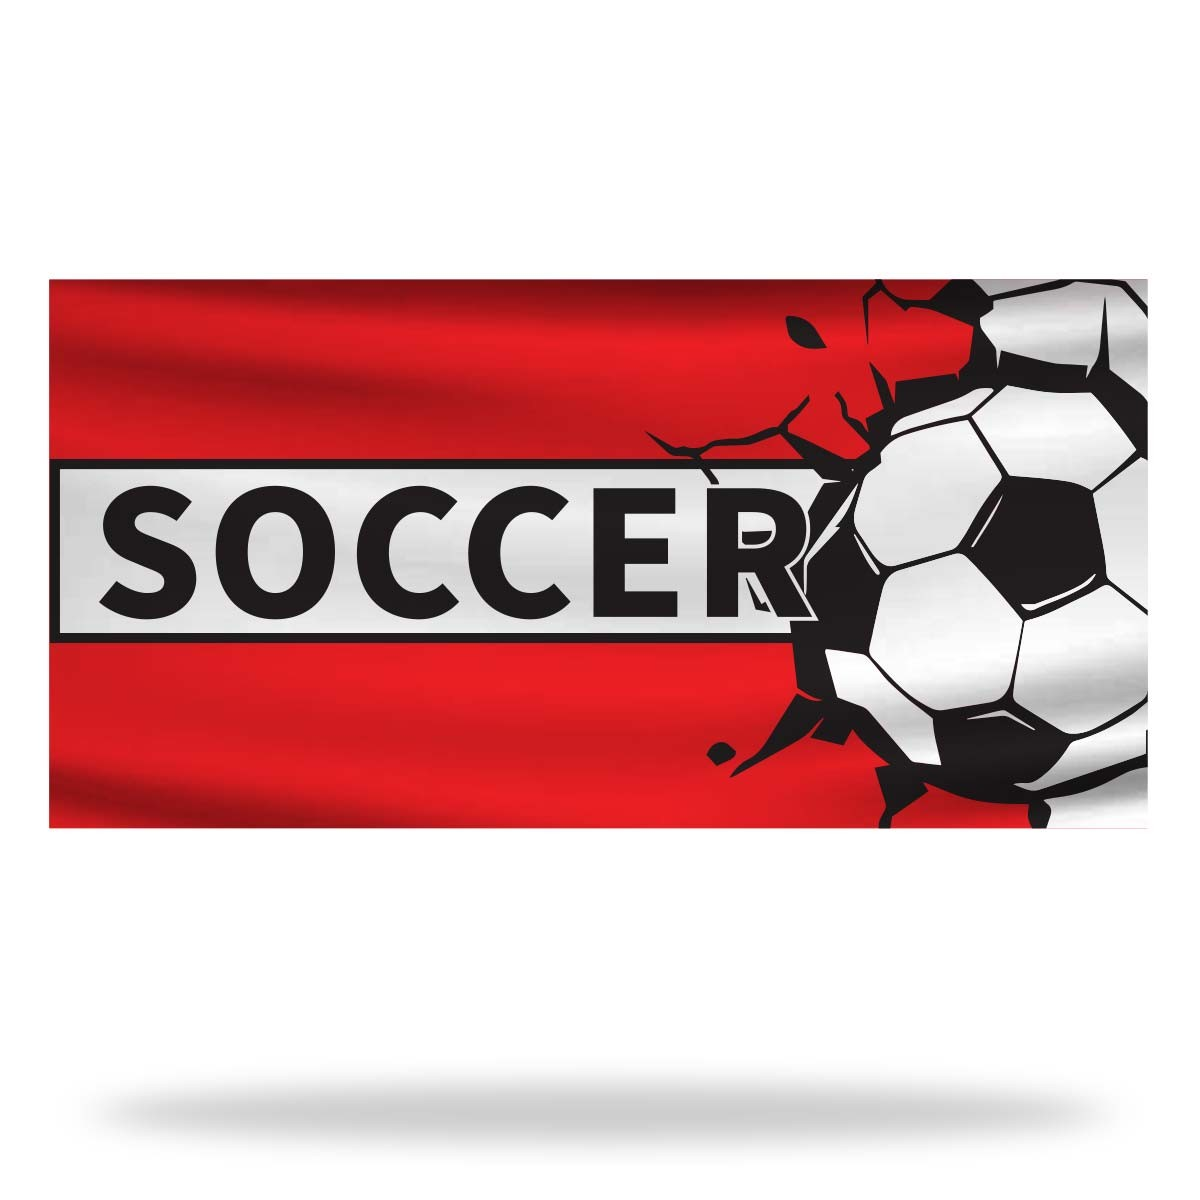 Soccer Flags & Banners Design 03